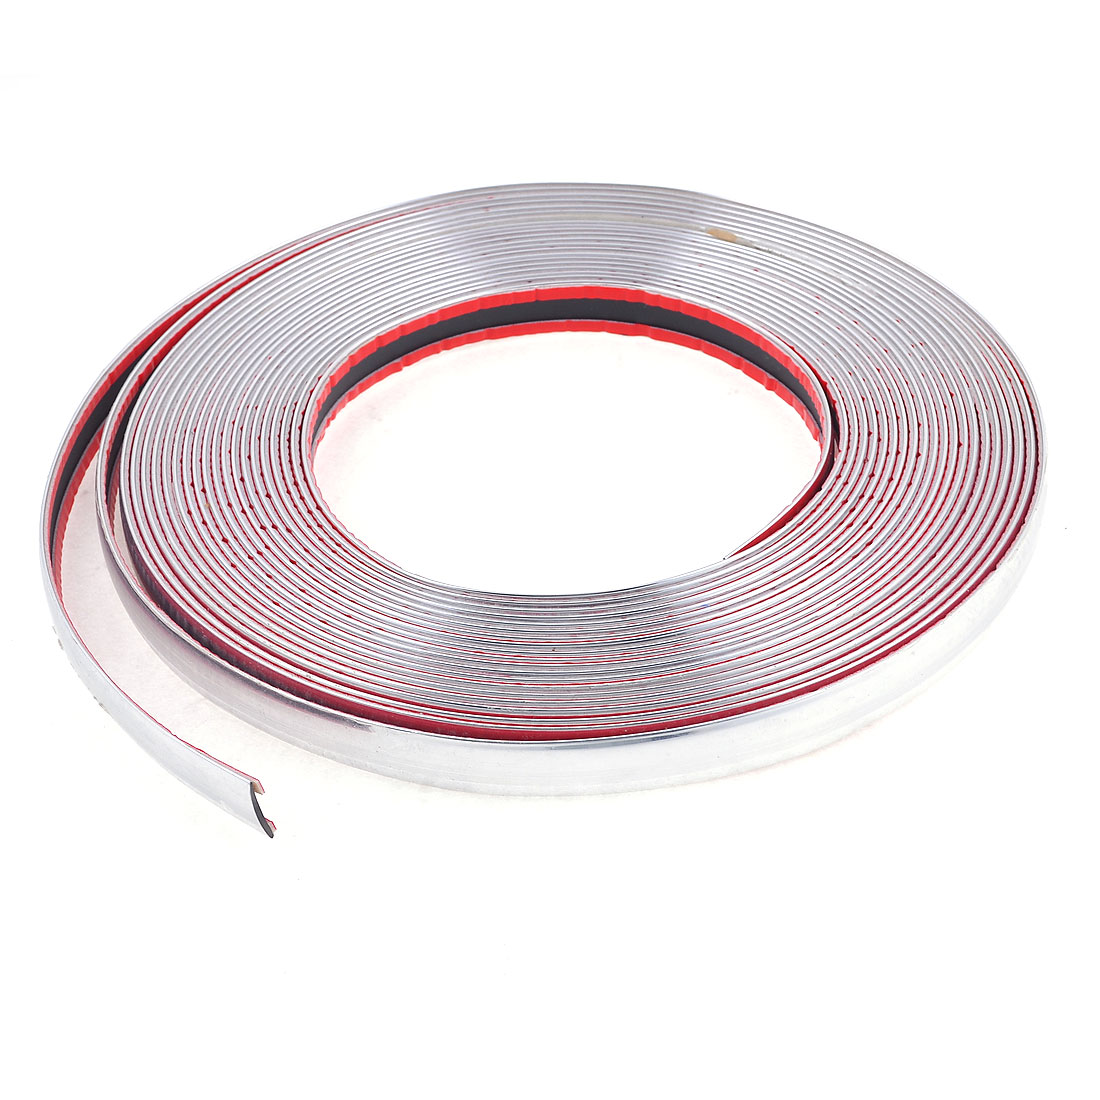 15M Car Vehicle Door Rubber Air Sealed Seal Strip Silver Tone